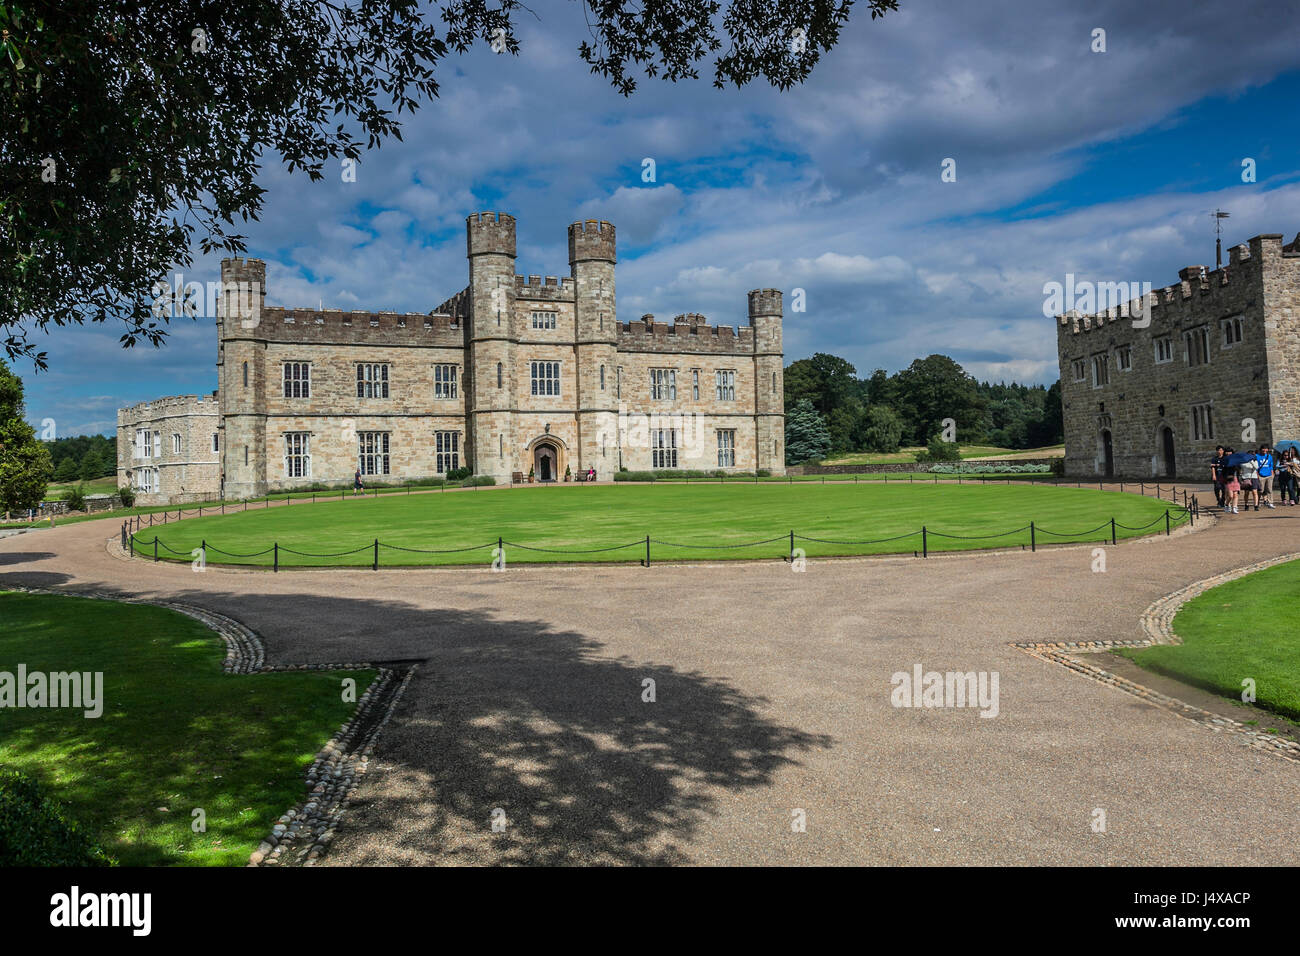 LEEDS CASTLE, KENT, ENGLAND-2nd SEPT 2015:-Leeds castle is situated in Kent, South East England, a perfect backdrop - Stock Image